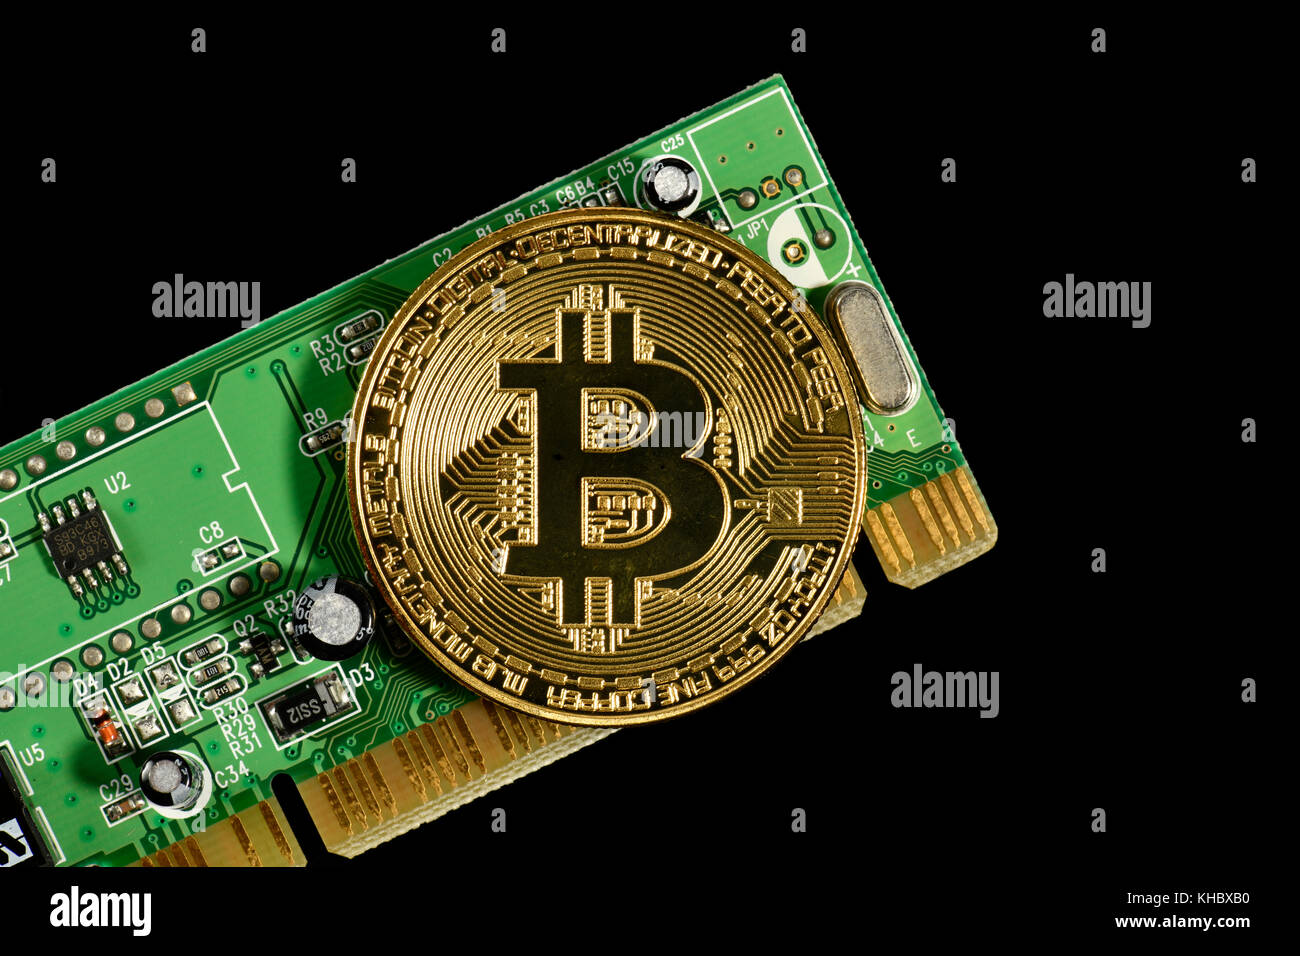 Symbol image digital currency, gold physical coin Bitcoin on printed ...